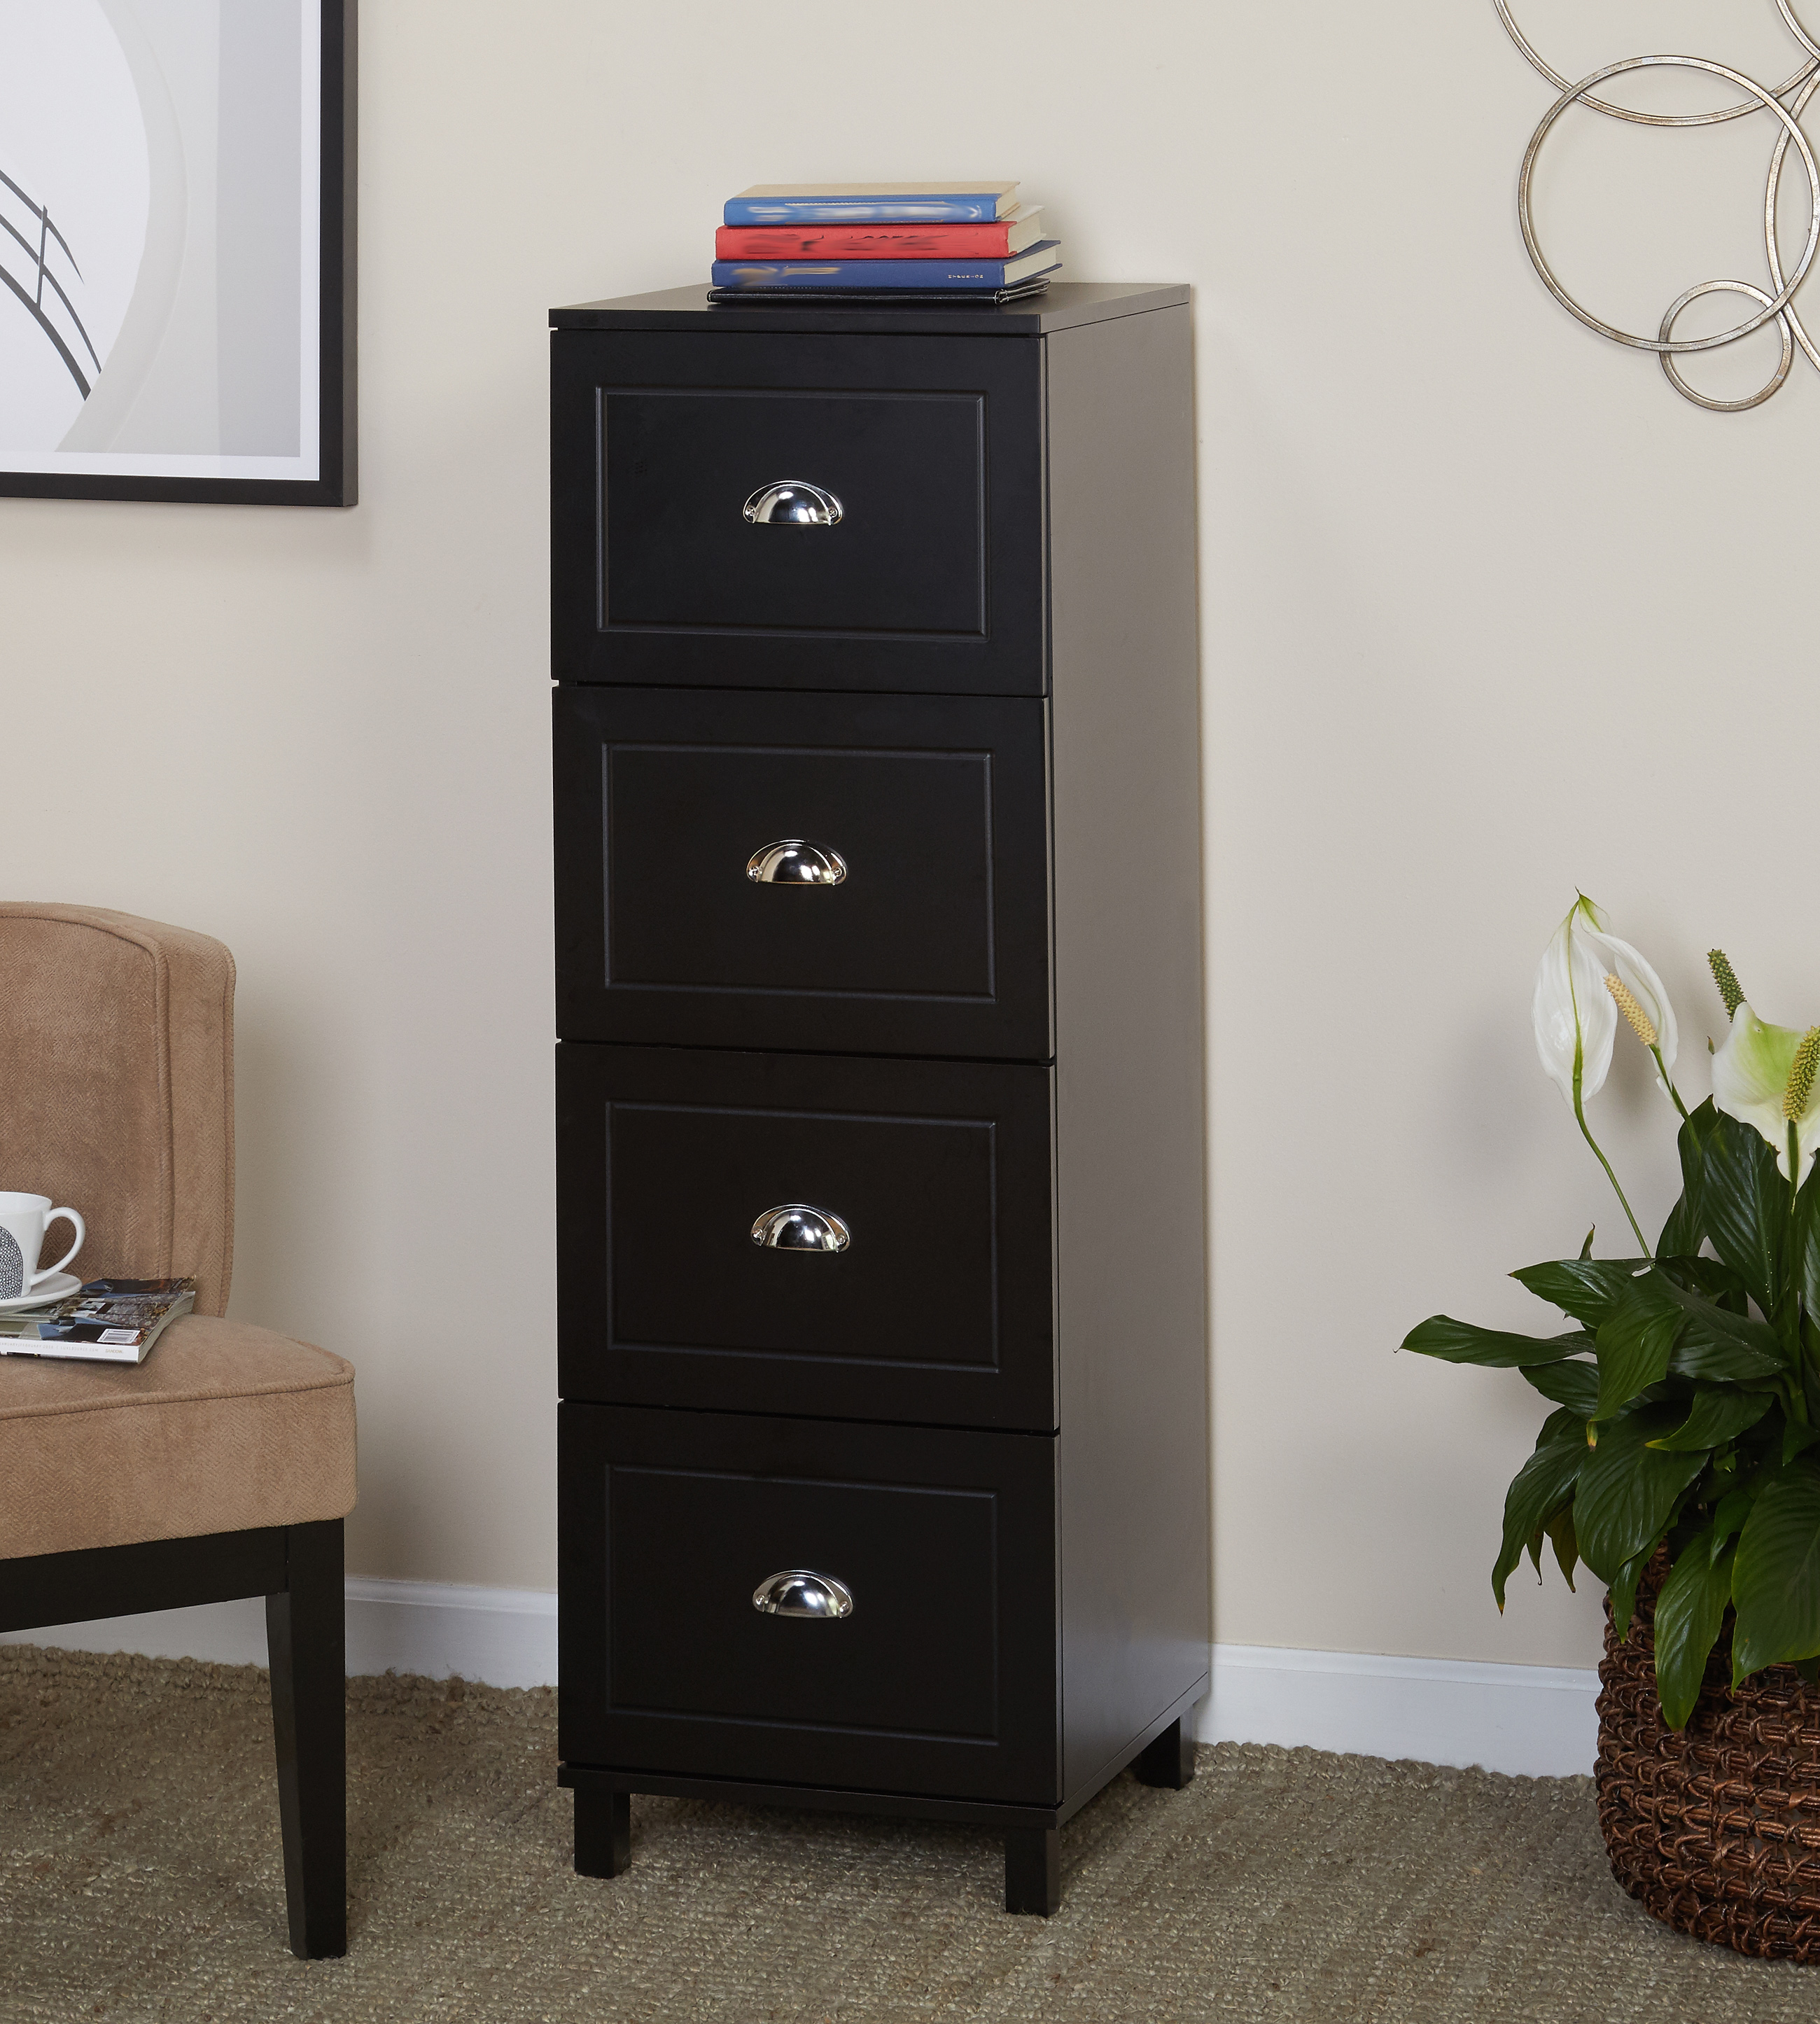 Product Image Bradley 4 Drawer Vertical Wood Filing Cabinet, Black